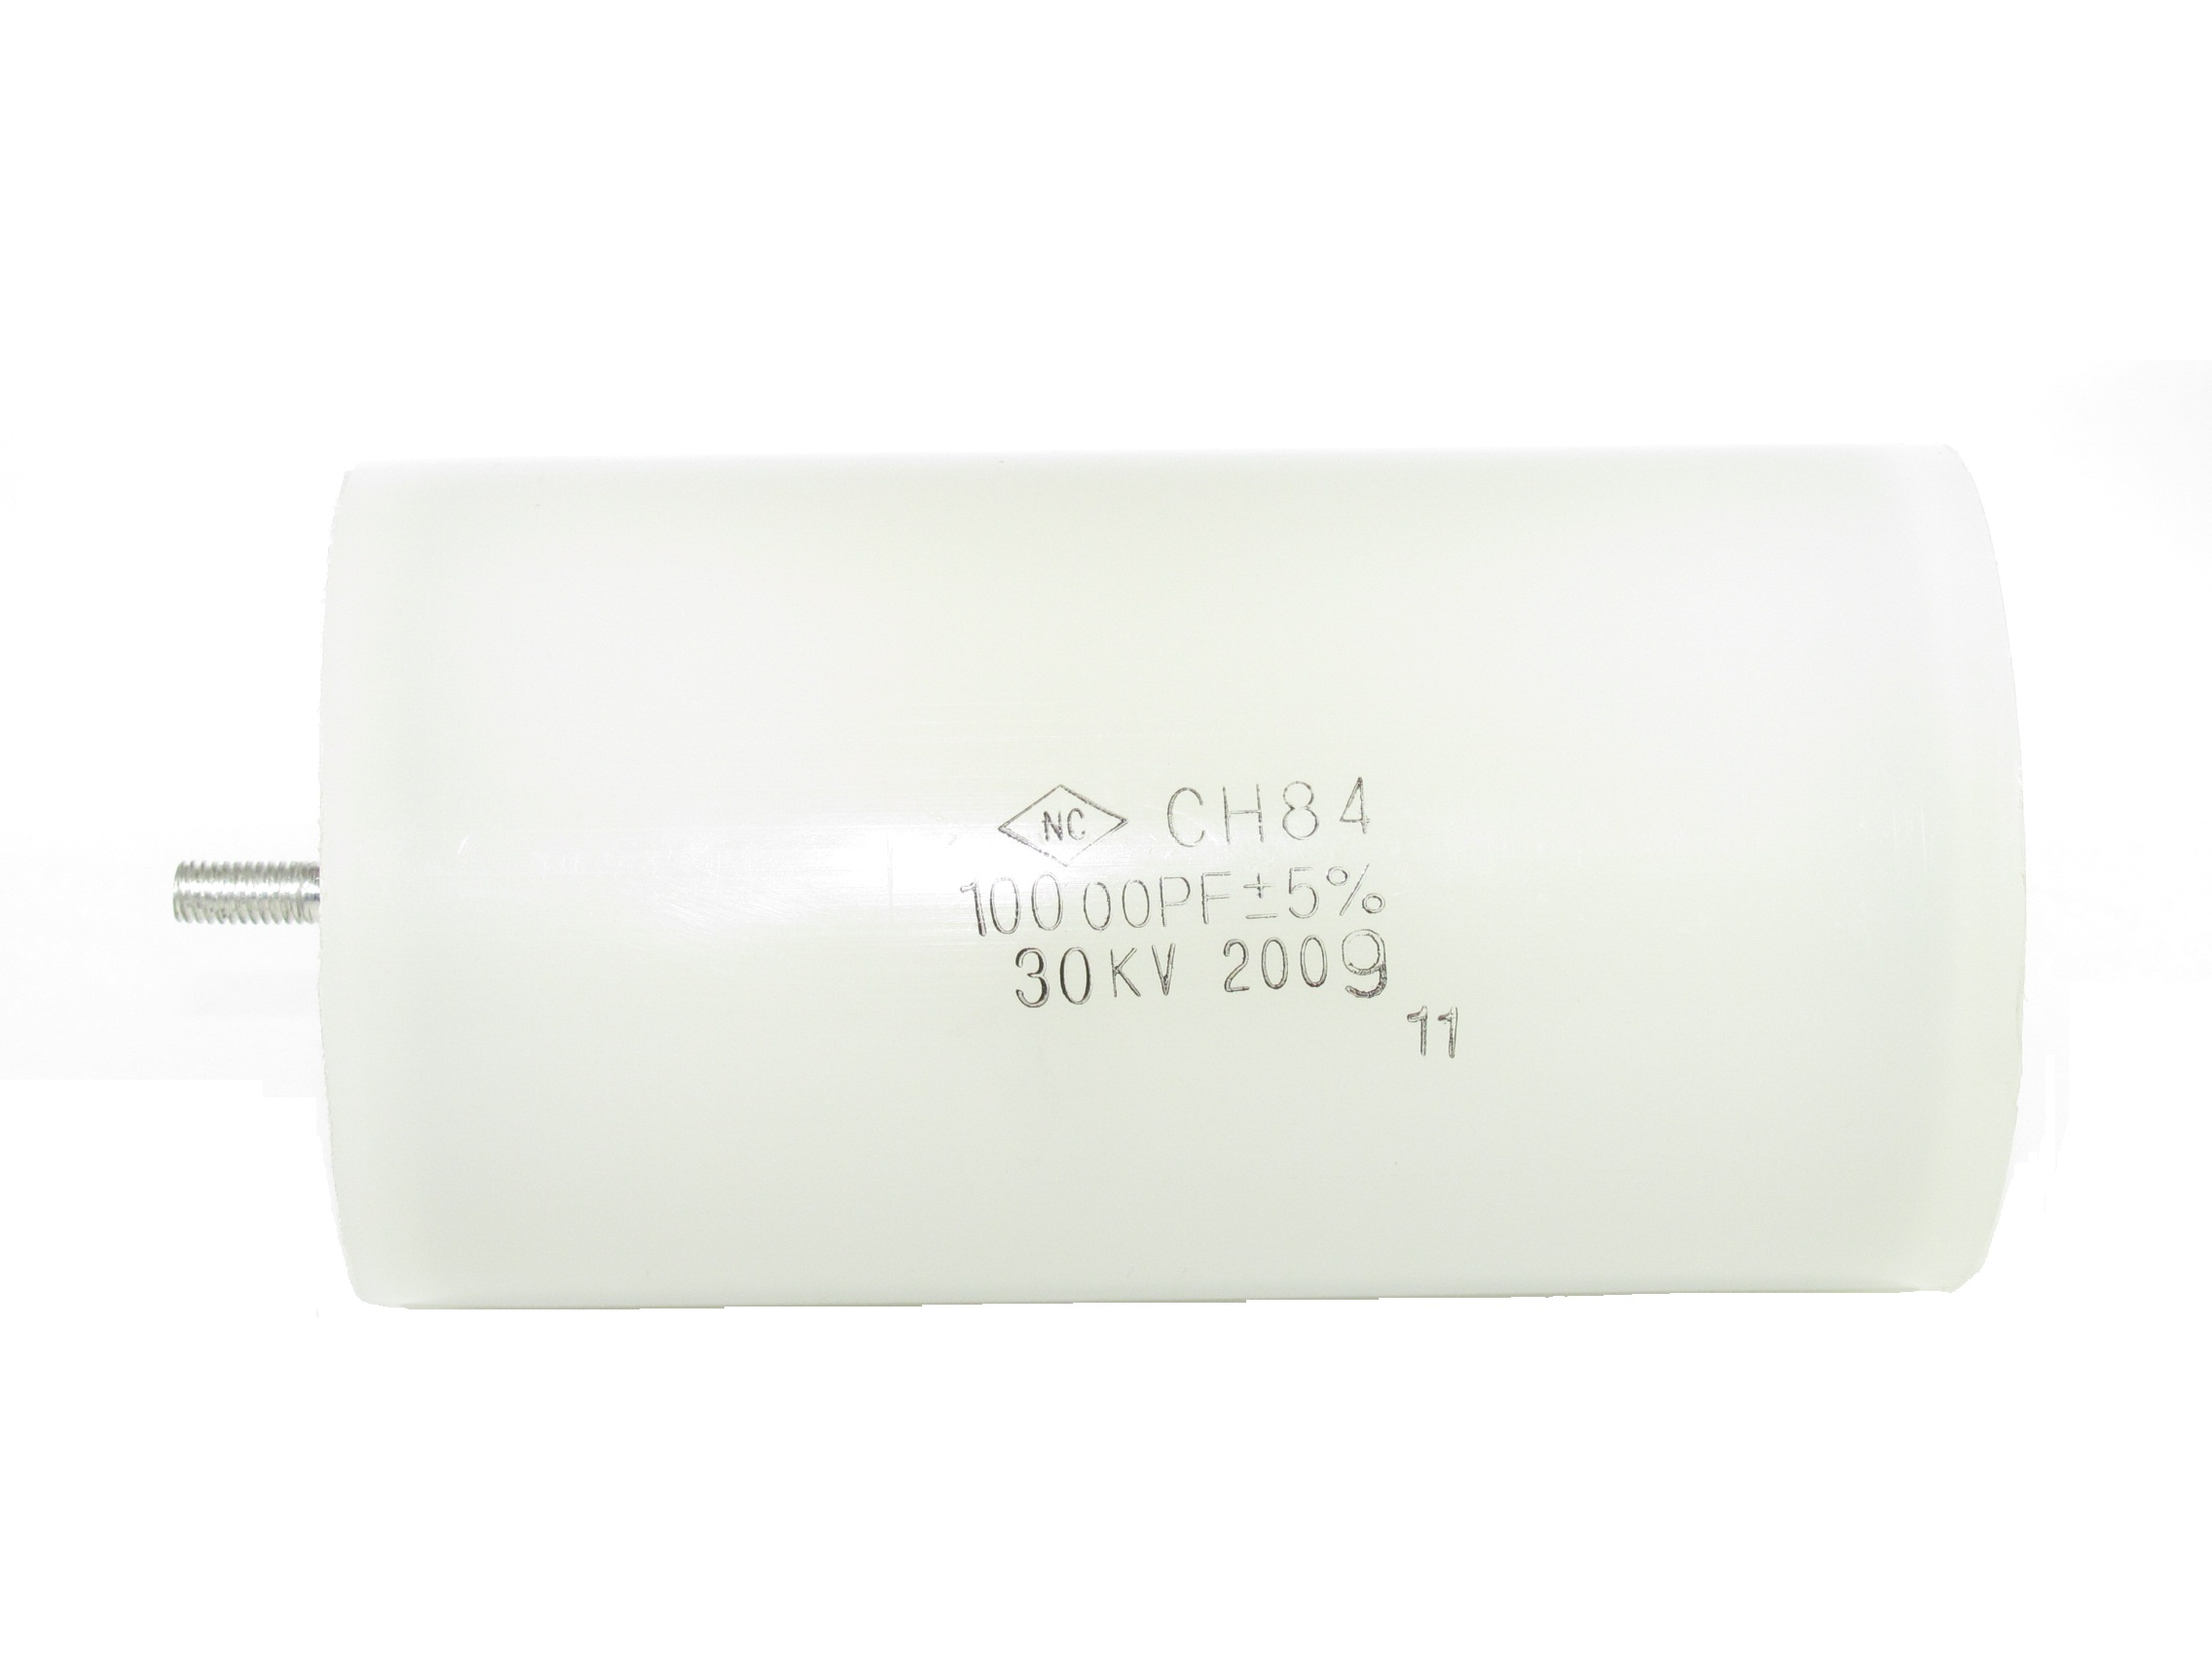 CH84 High Voltage Capacitors